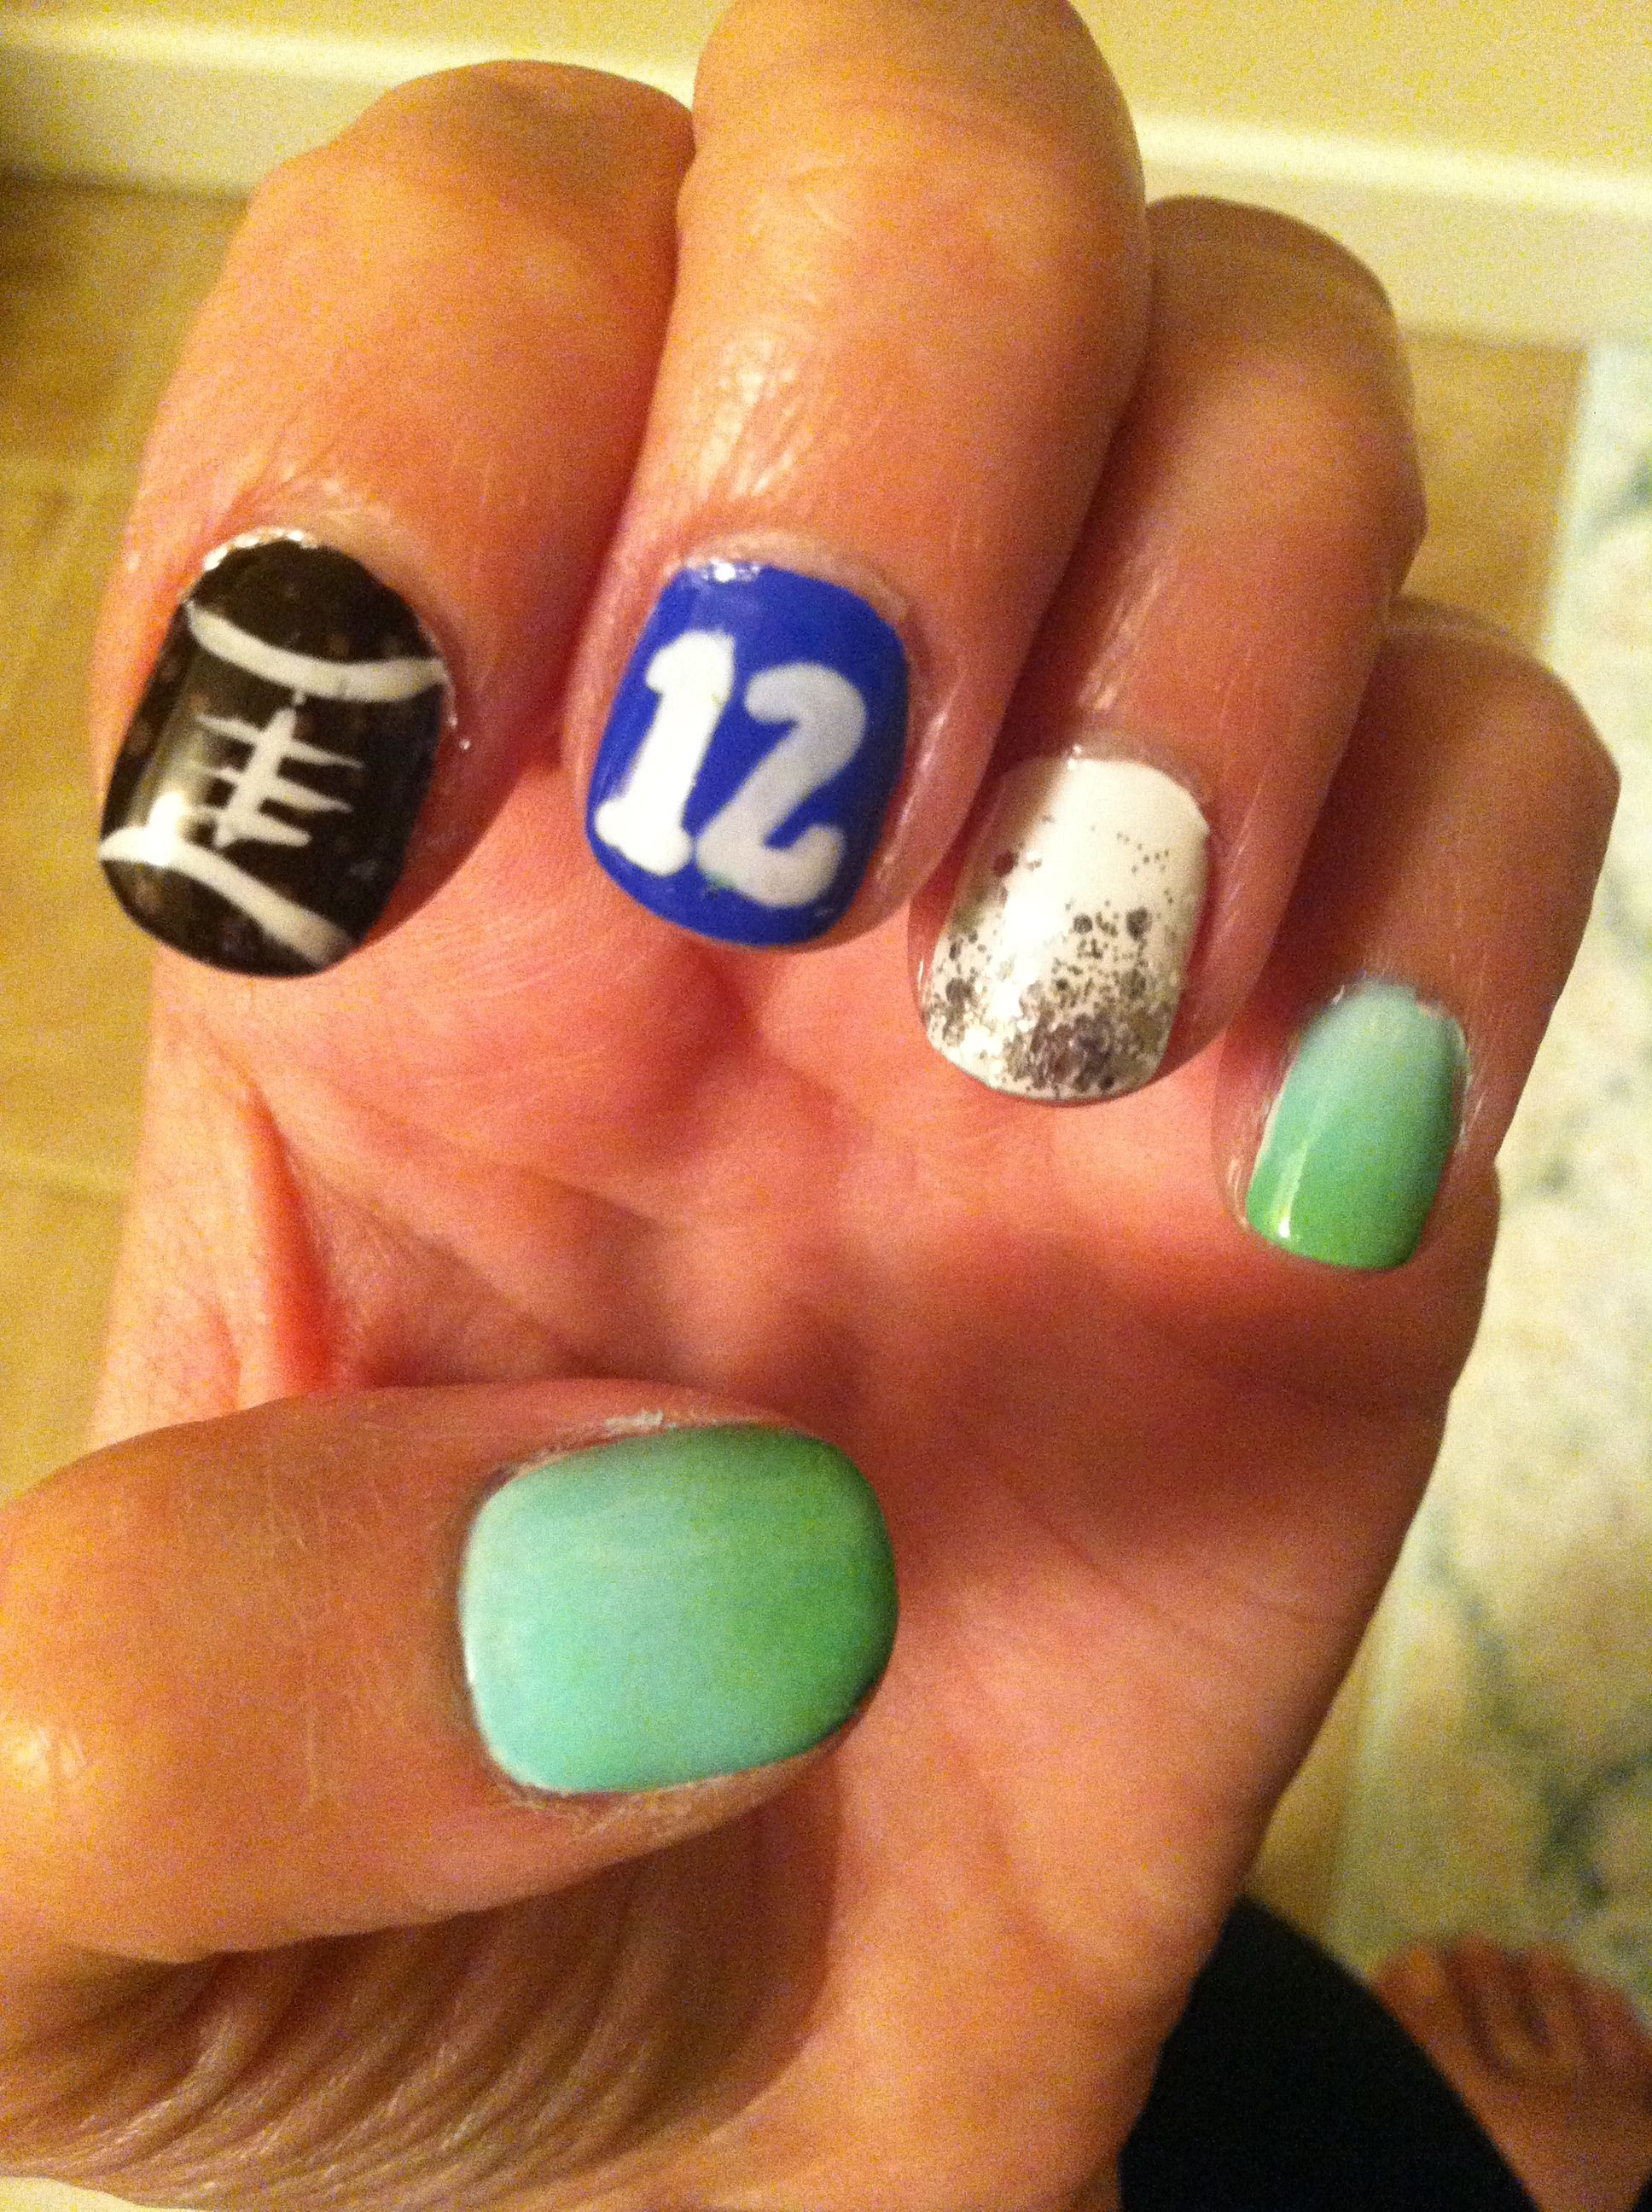 Seahawks 12th man nail art | Seattle Seahawks Funny | Pinterest ...